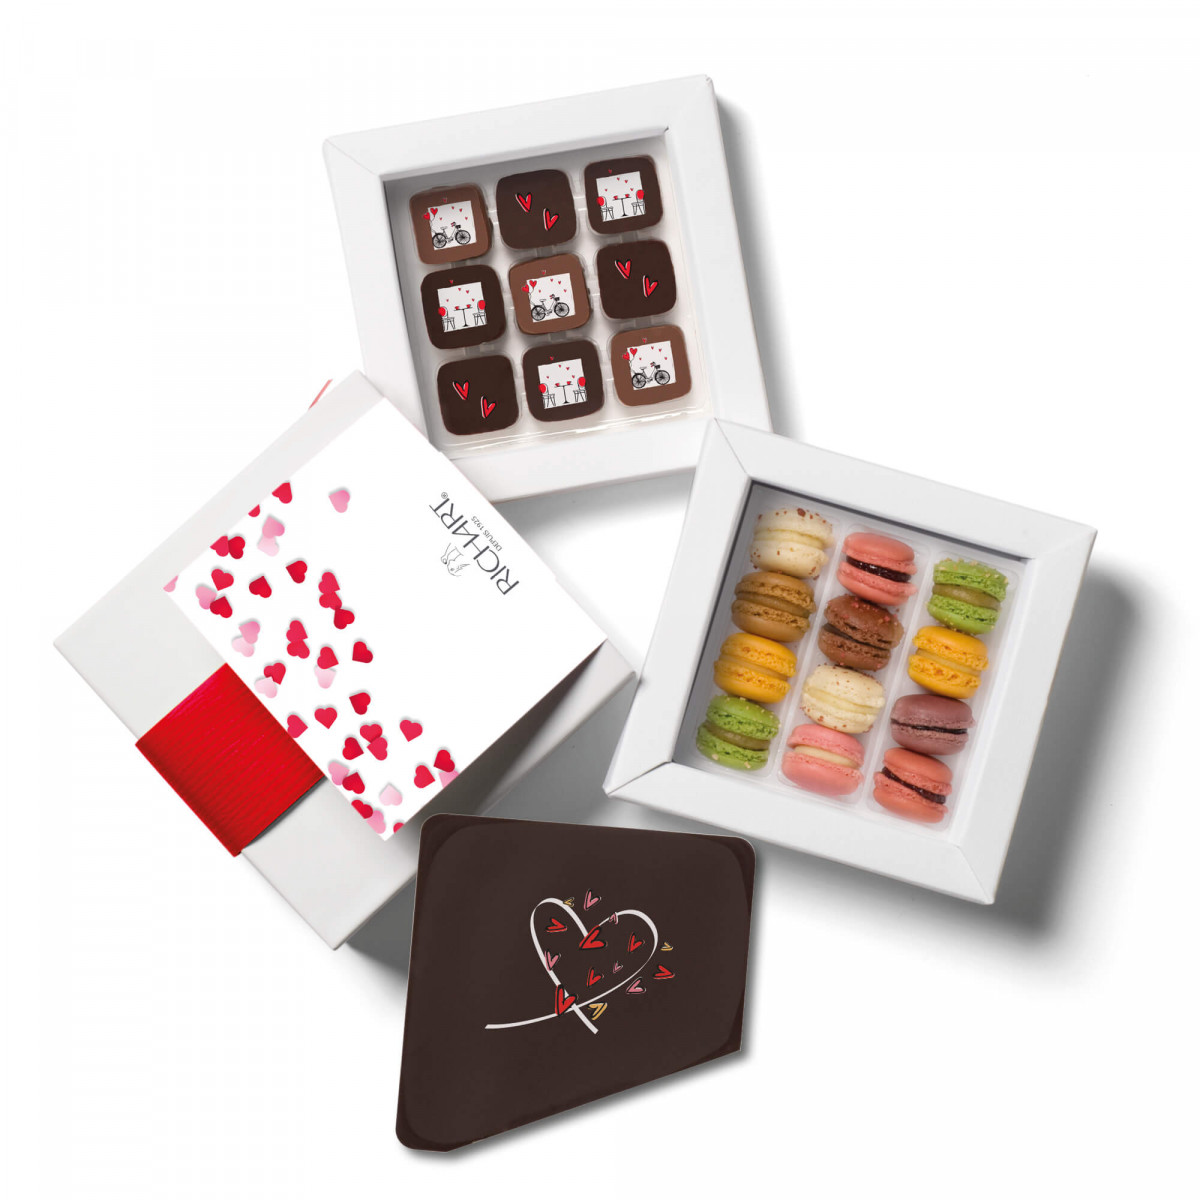 RICHART Chocolates - Love at First Sight Box with 9 Valentine's Day filled chocolates, 12 french macarons and a message card